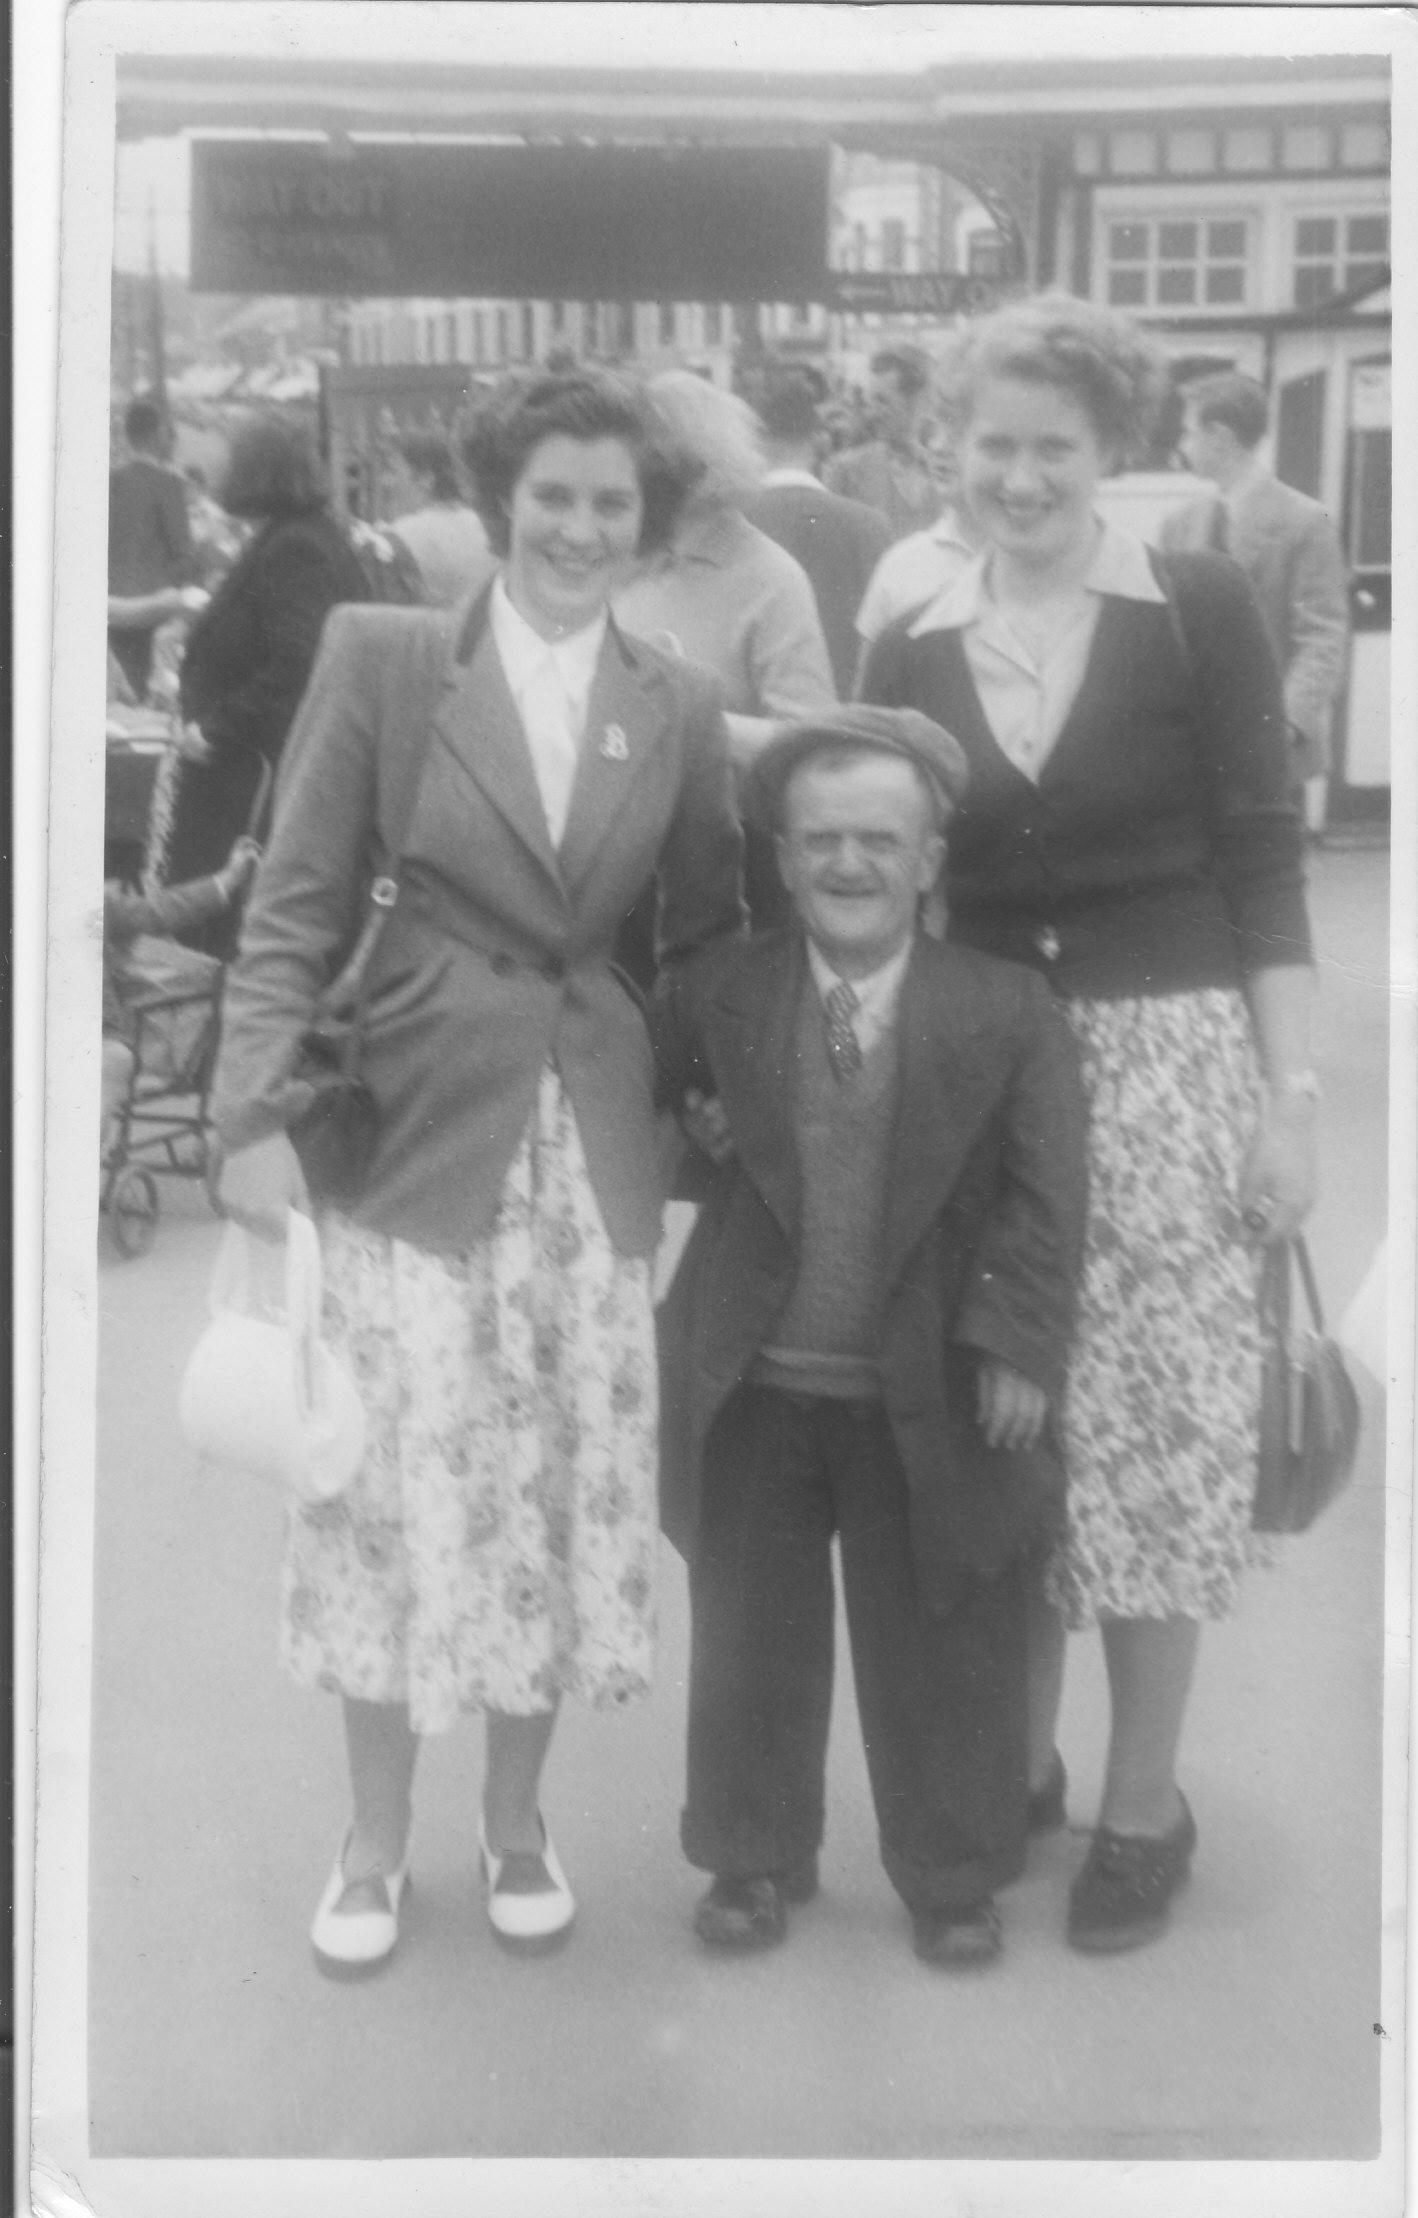 Gressenhall photos - Beryl Hammond, Little Freddie, Gladys Richmond jpg (1418px x 2218px)